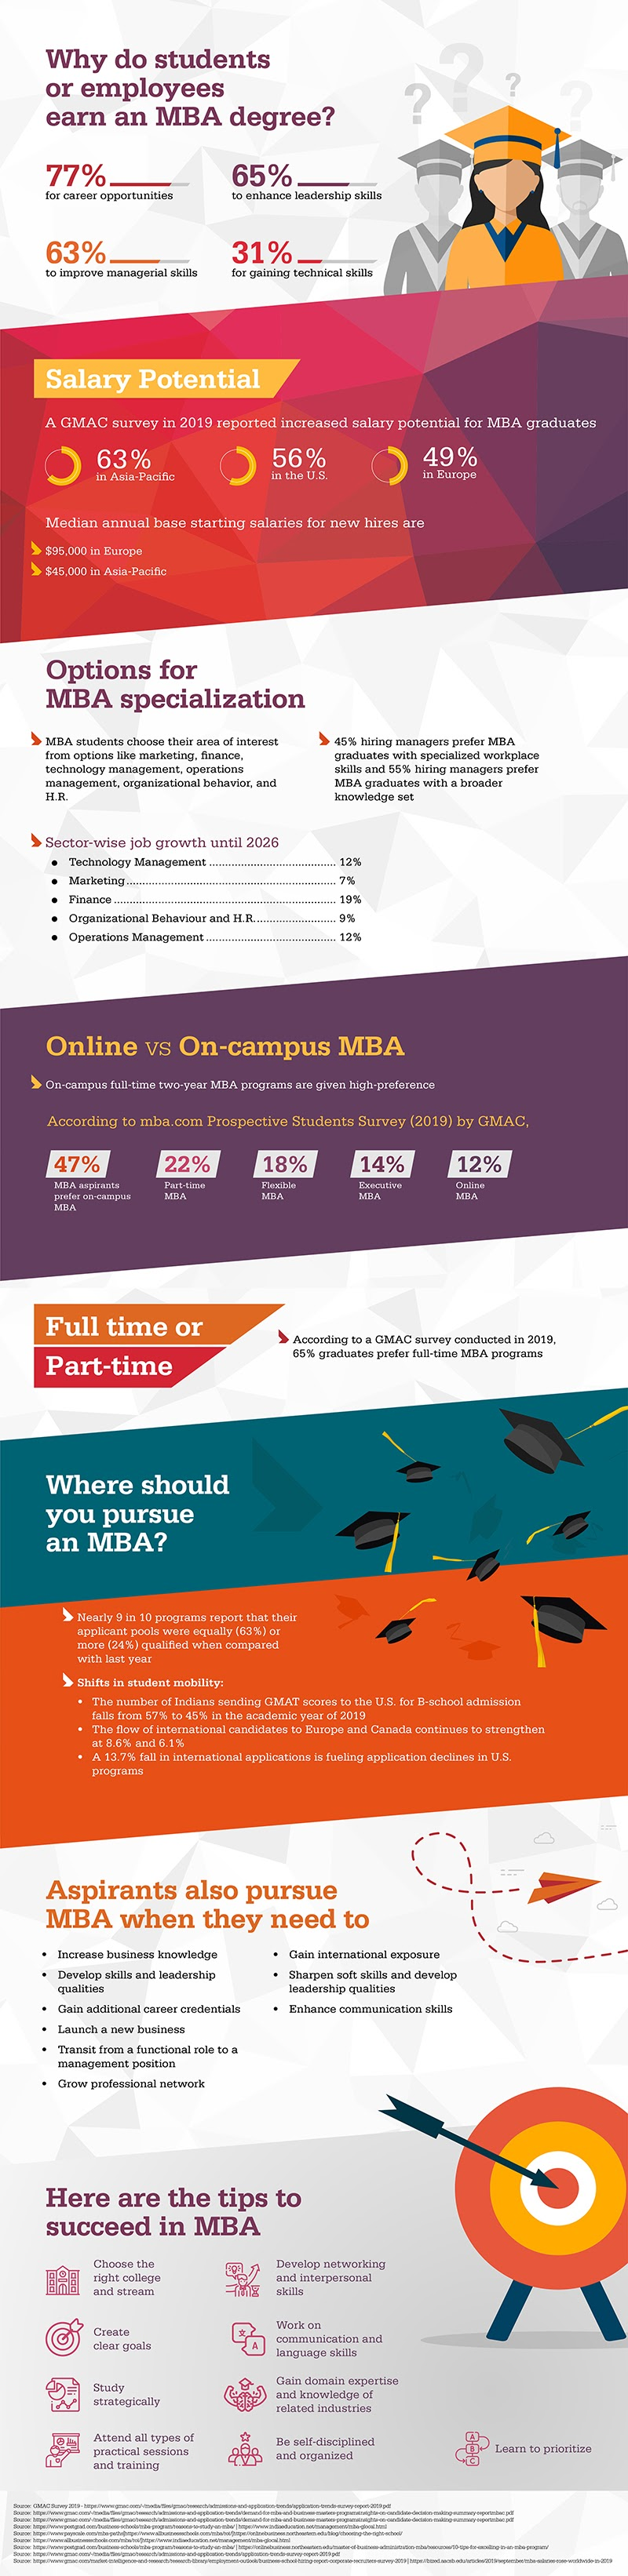 Why Do Students or Employees Earn an MBA Degree? #infographic